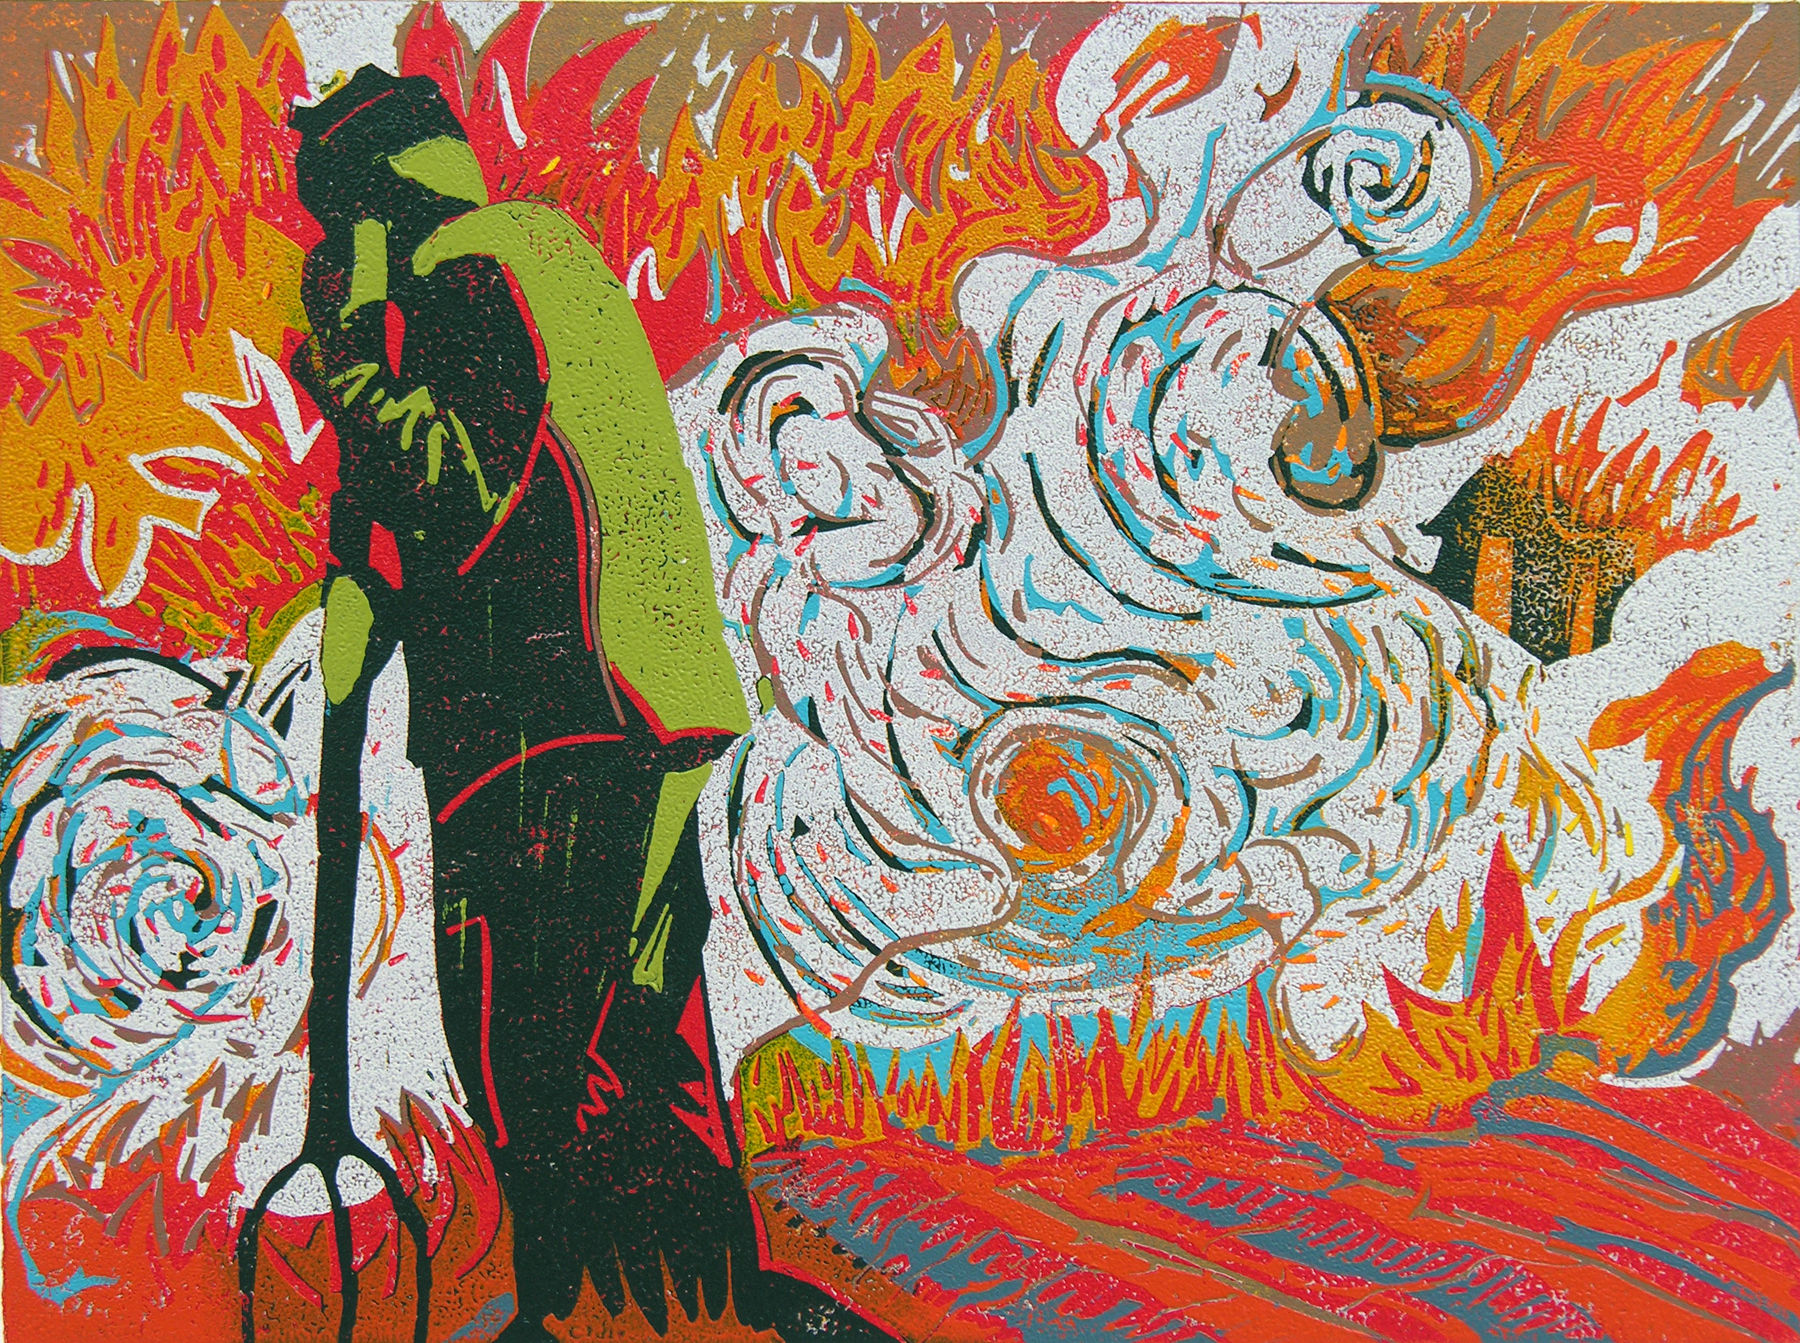 "Do Not Let the Flames Consume You (2/14) , reduction linoleum print on paper, 9"" x 12"" image size, $500"